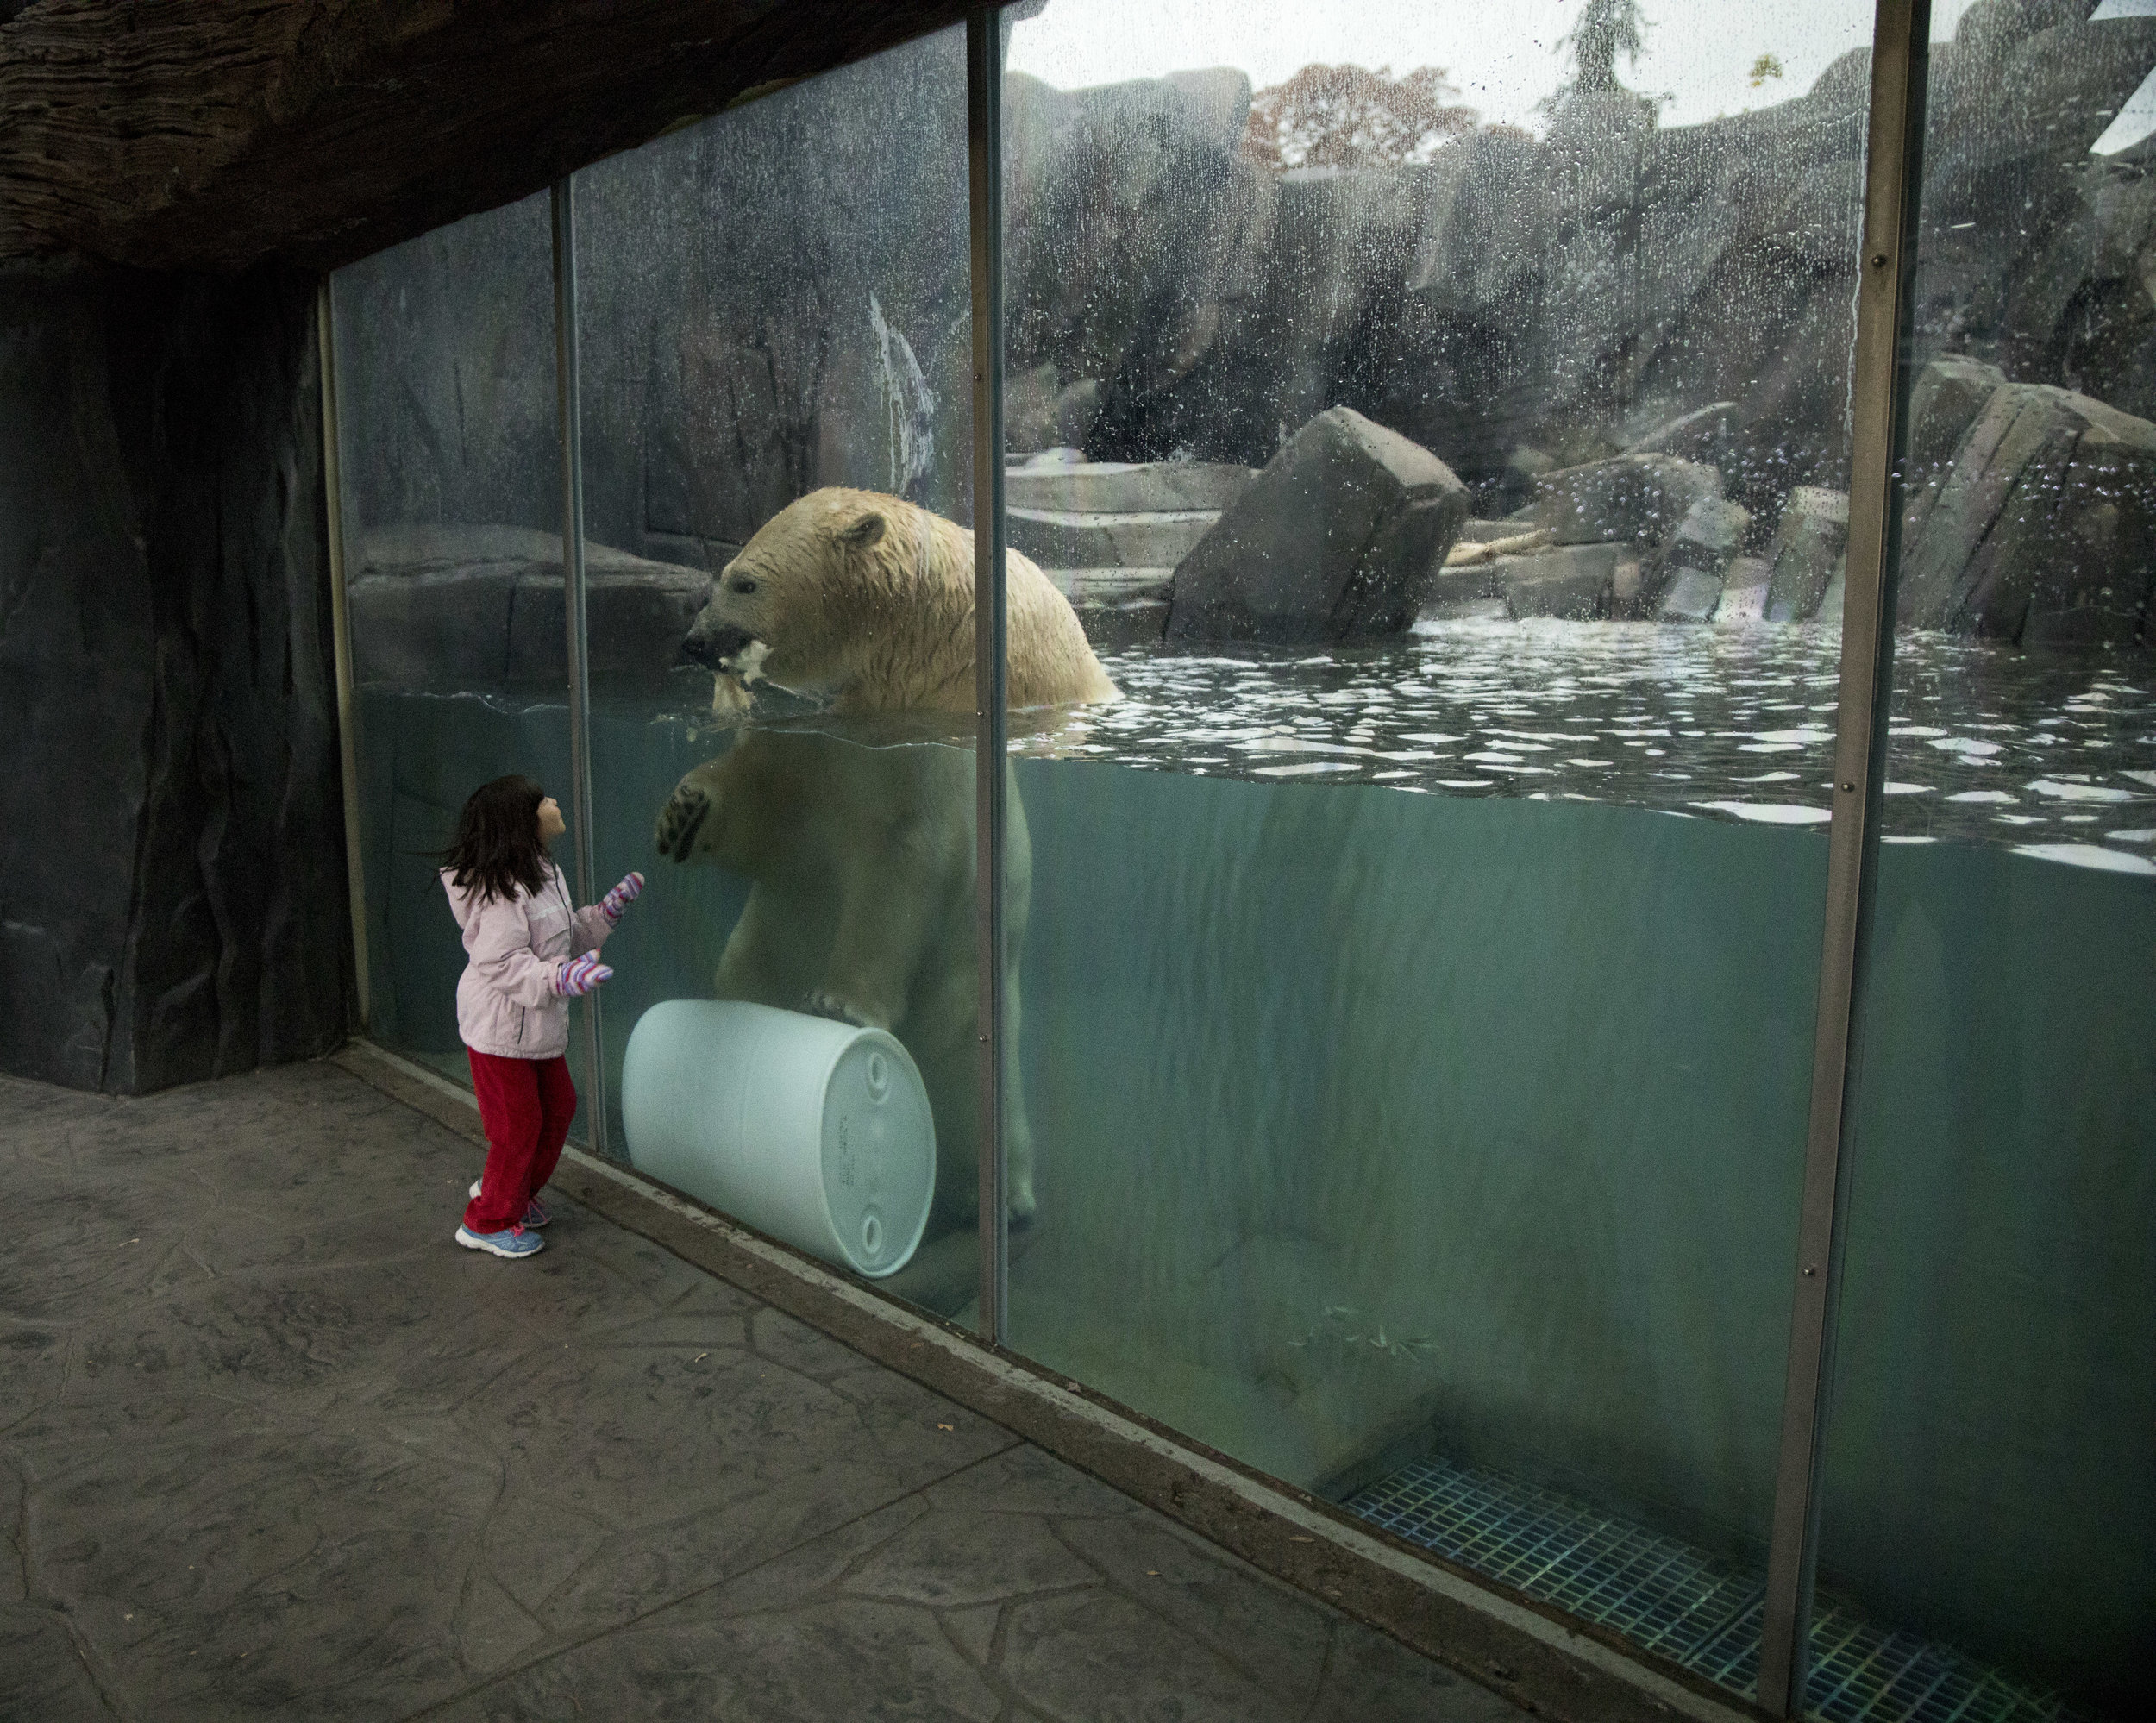 Saint_Louis_Zoo_Photographer_Polar_Bear_in_the_water.jpg